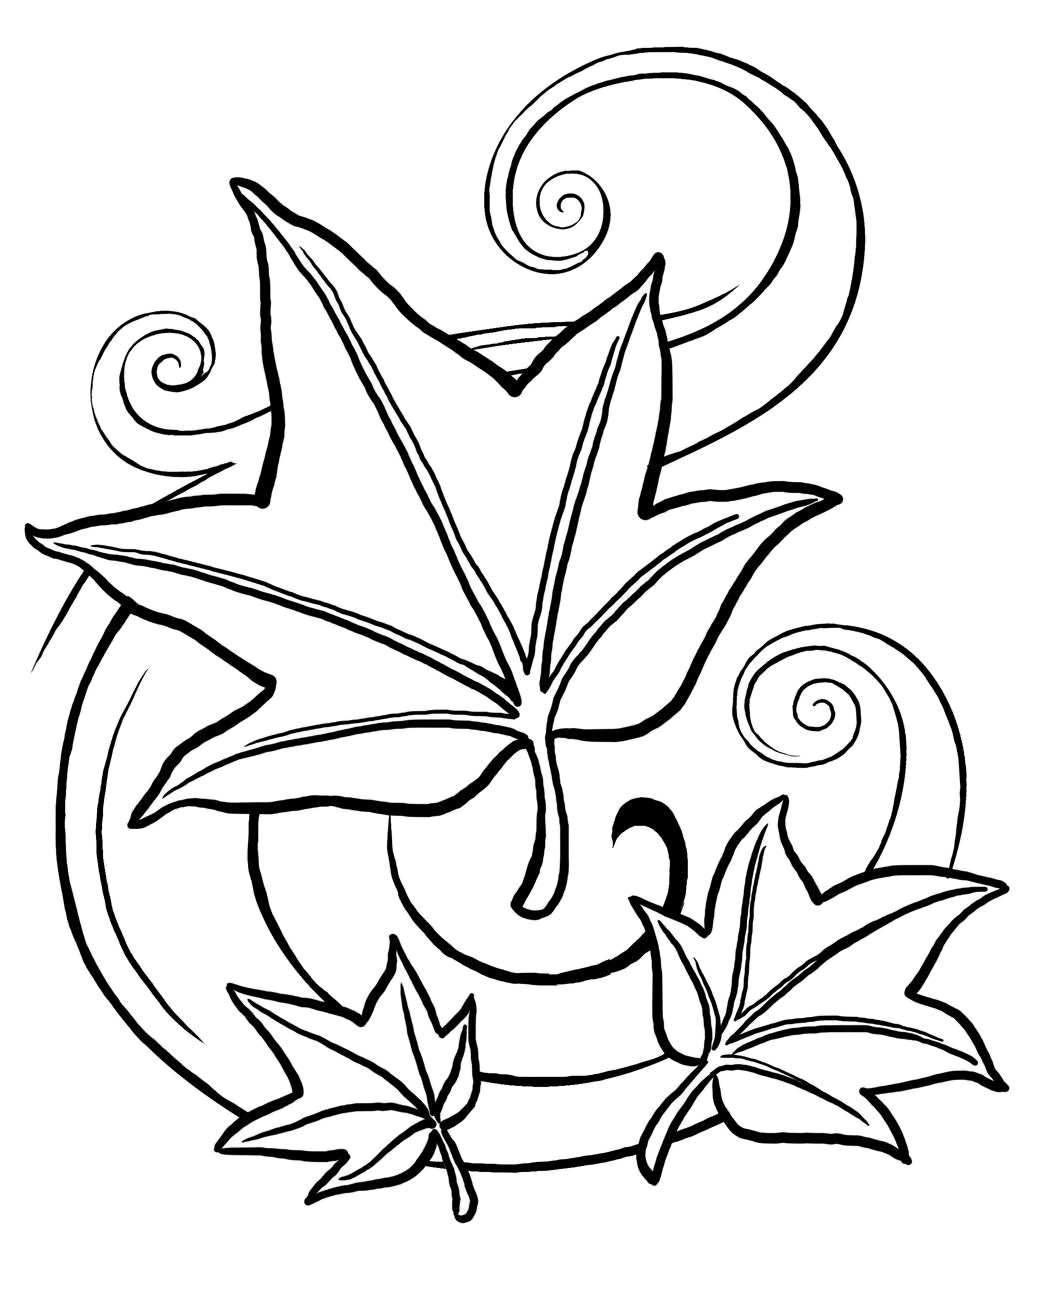 autumn leaves pictures to colour different type of autumn leaf coloring page download pictures to colour autumn leaves